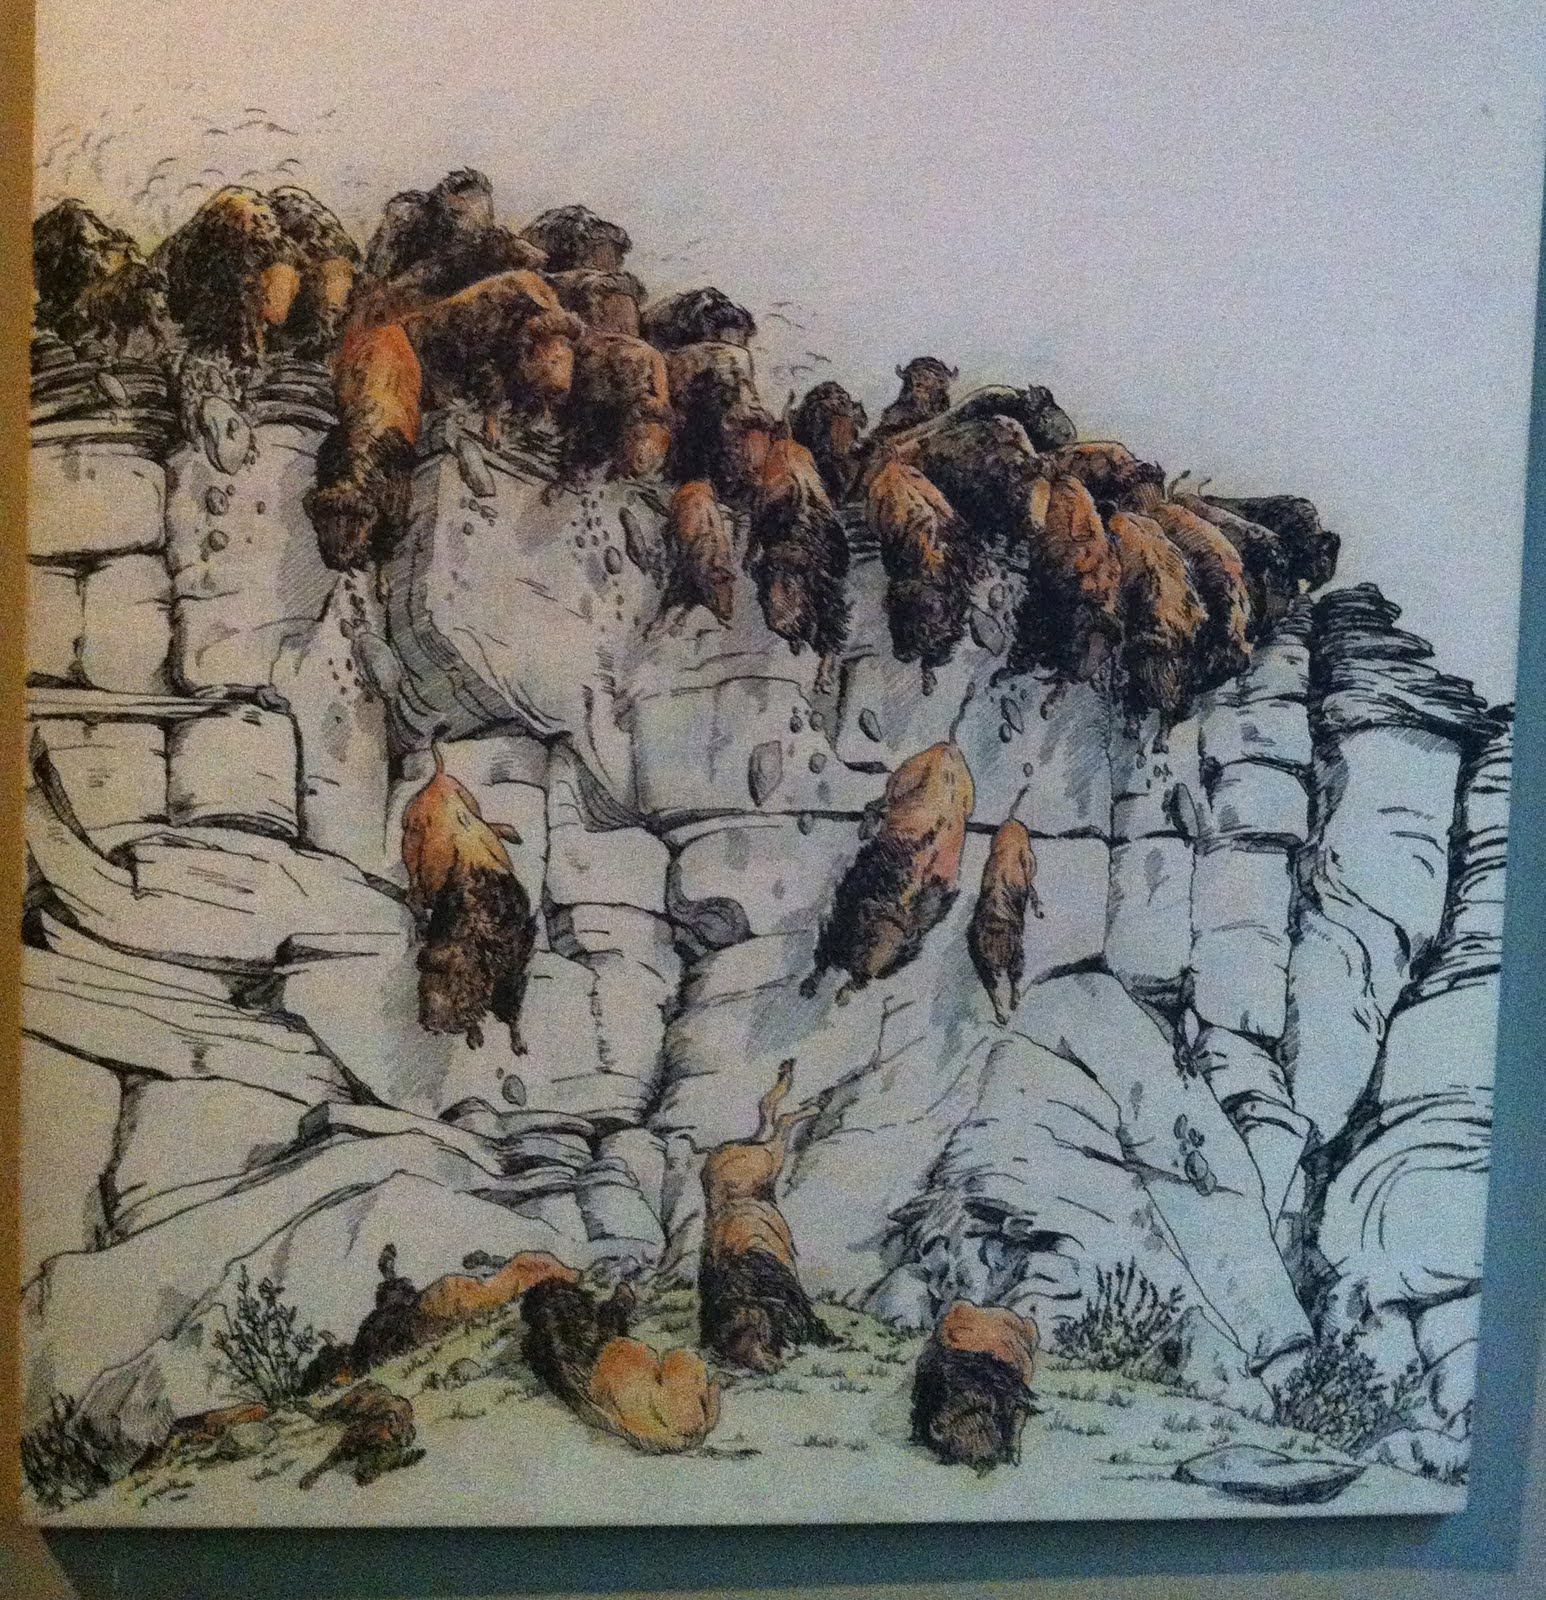 Buffalo stampede over a cliff